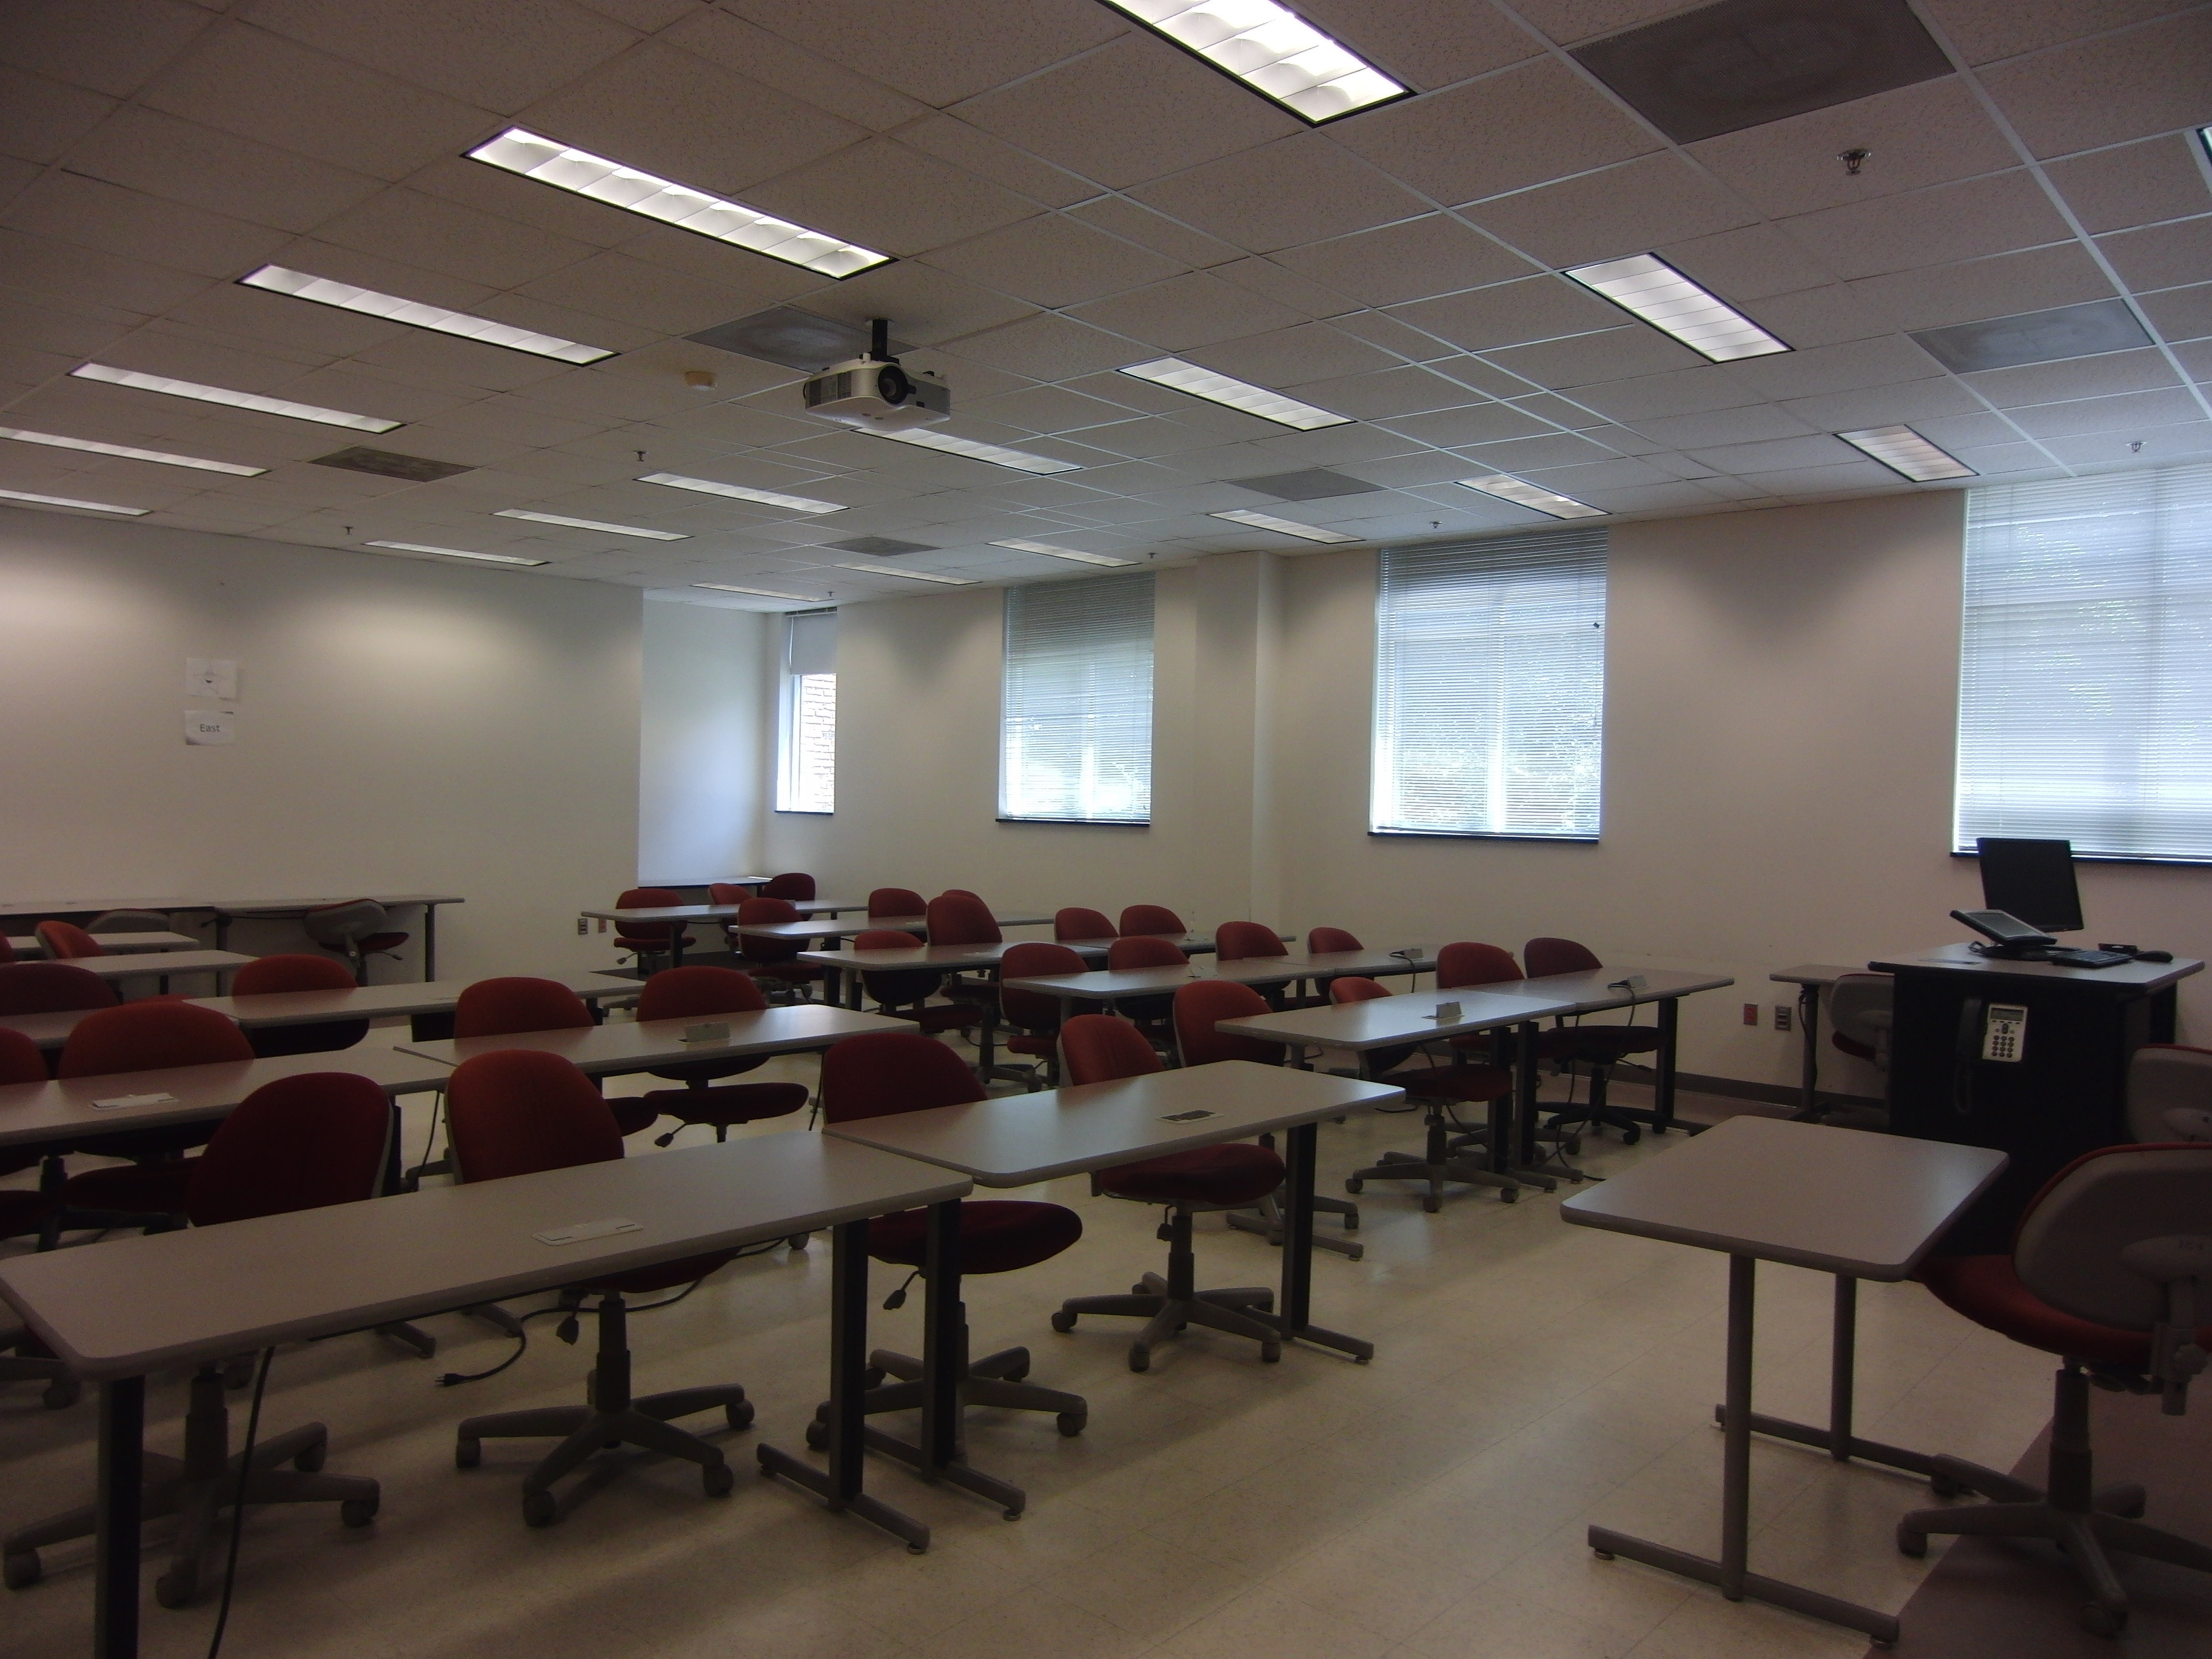 Photo of the classroom taken from the front entrance showing the stationary student tables, instructor table, and mobile chairs